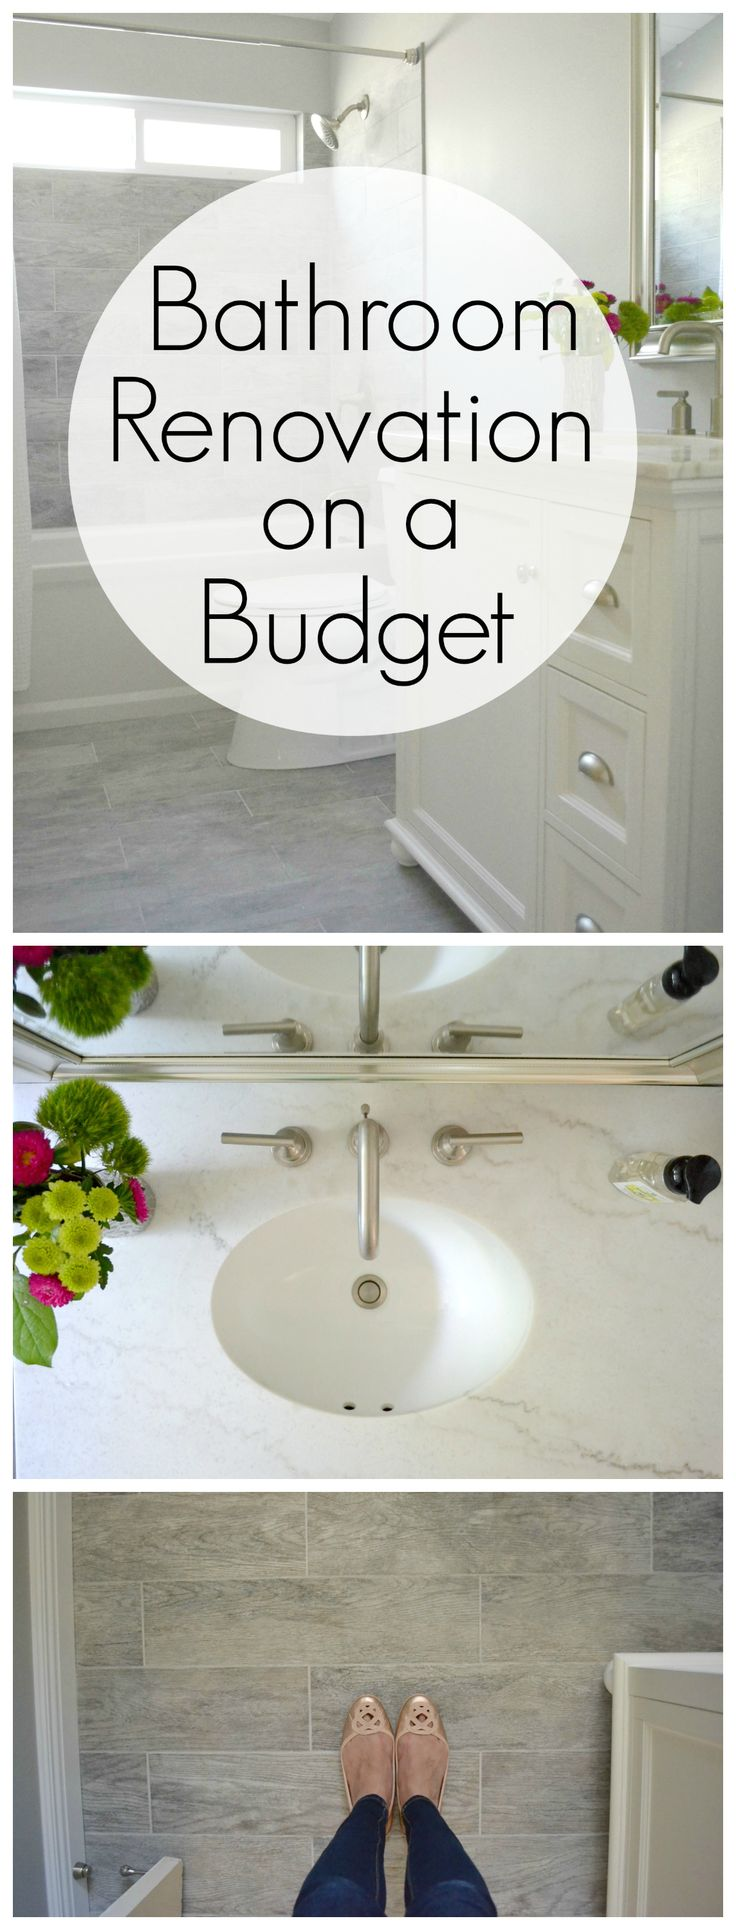 Bathroom Renovation On A Budget Update – A Year later